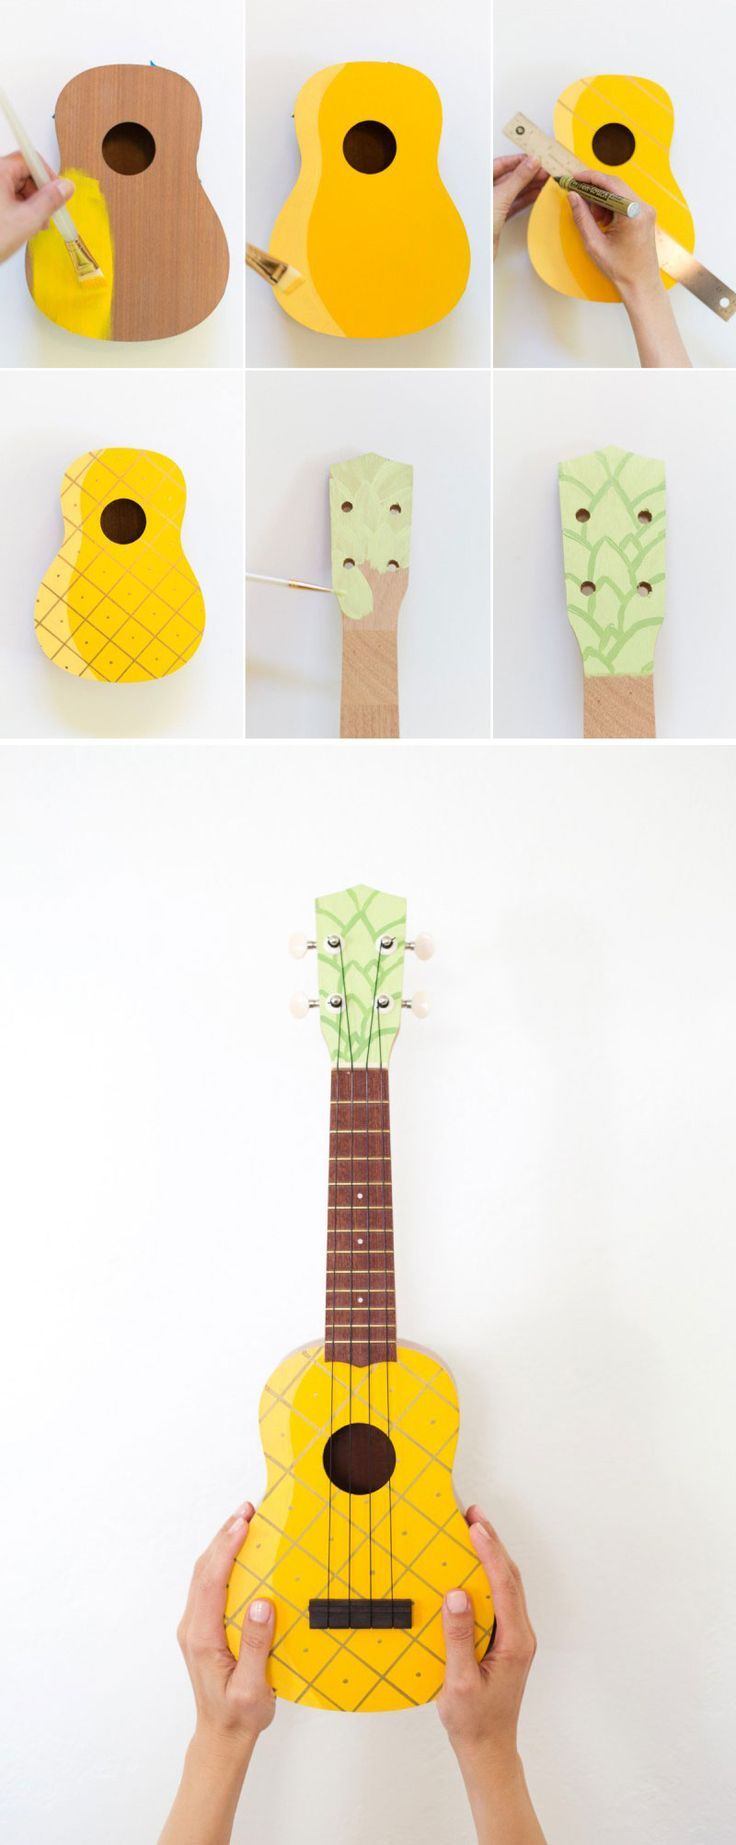 Pineapple ukulele(I don't think I would necessarily take apart the uke to do this but it's still fun to see what people can come up with;):